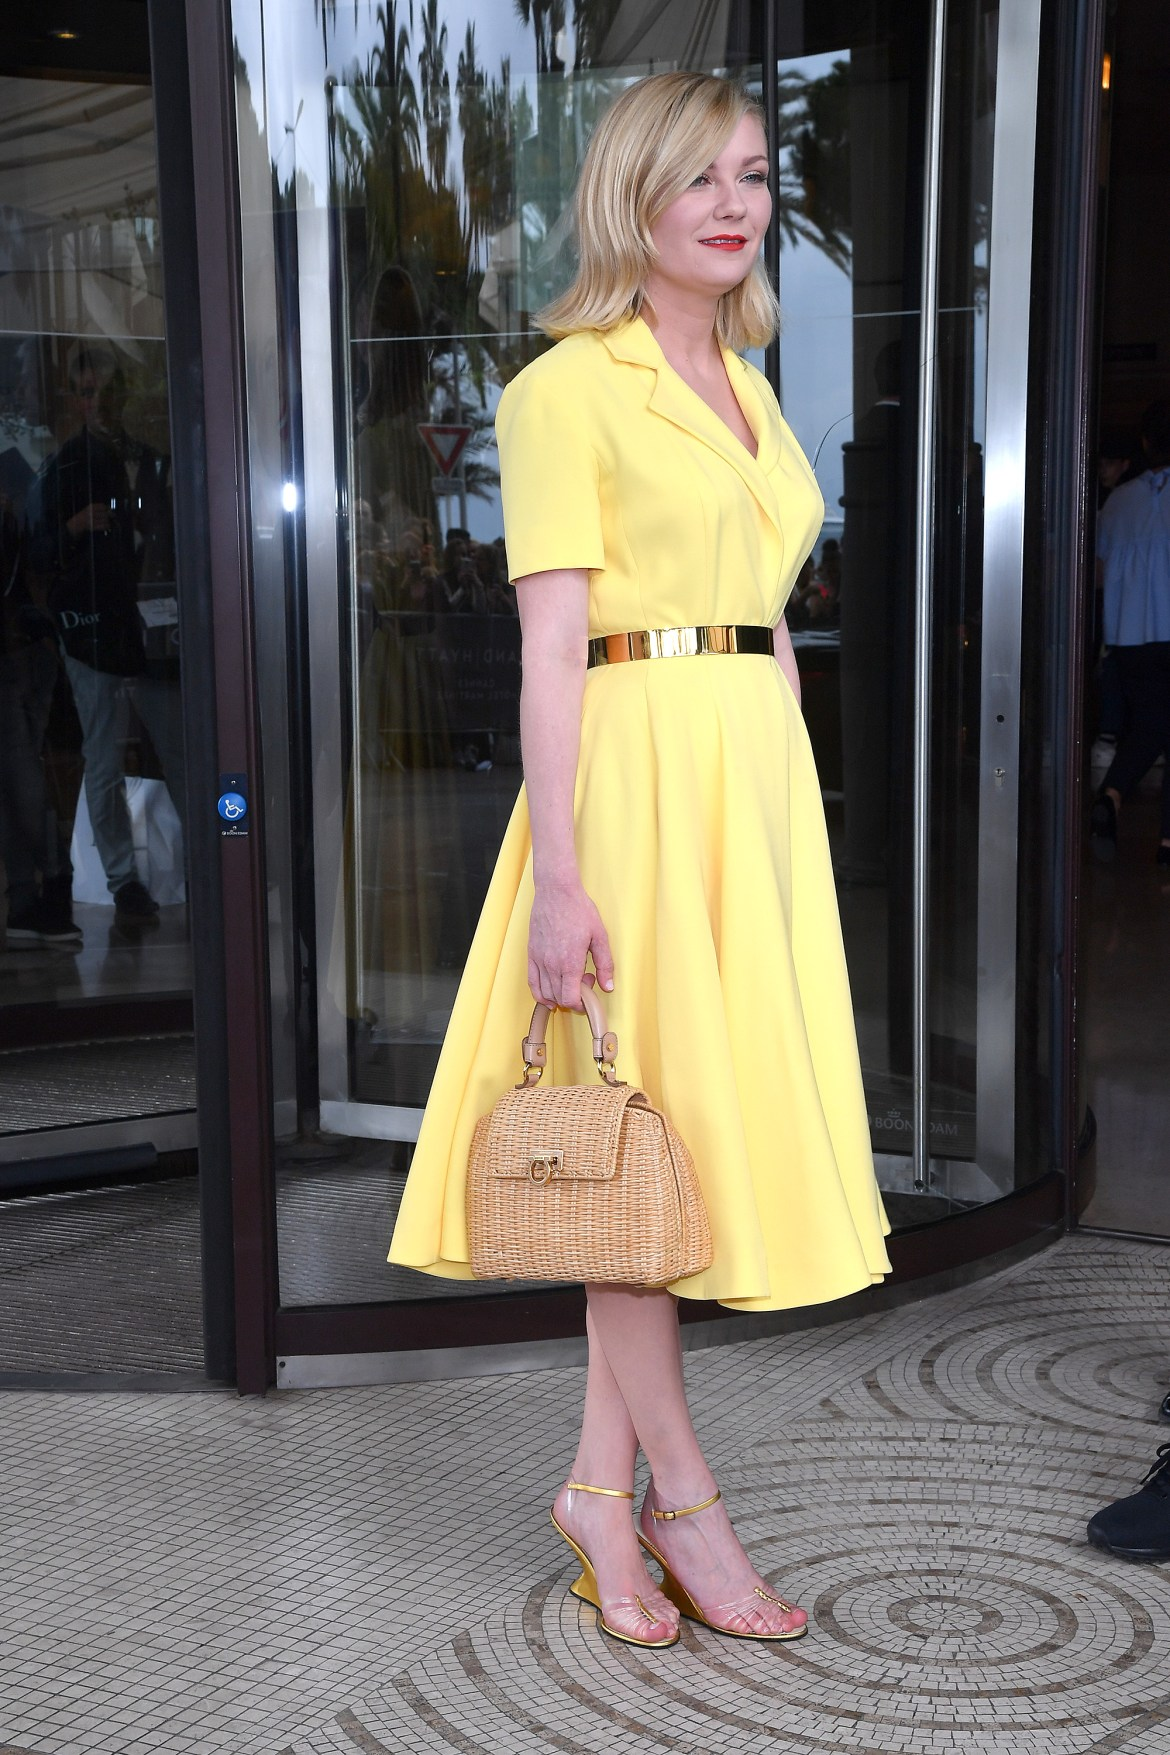 CANNES, FRANCE - MAY 11: Kirsten Dunst is seen at Hotel Martinez during the annual 69th Cannes Film Festival at on May 11, 2016 in Cannes, France. (Photo by Jacopo Raule/GC Images)